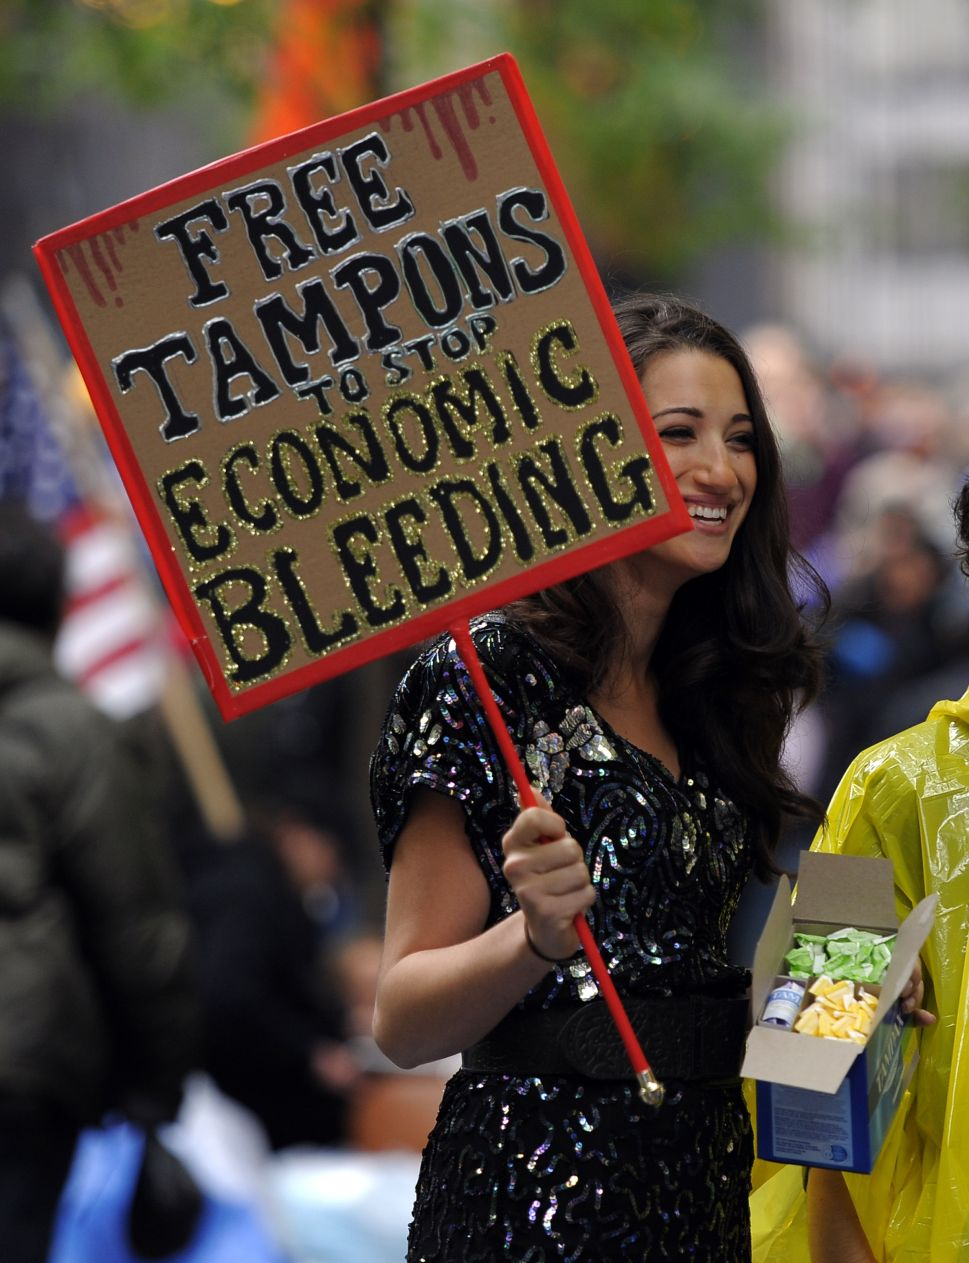 Afternoon Bulletin: NYC Introduces Free Tampons in Schools, Prisons and Shelters